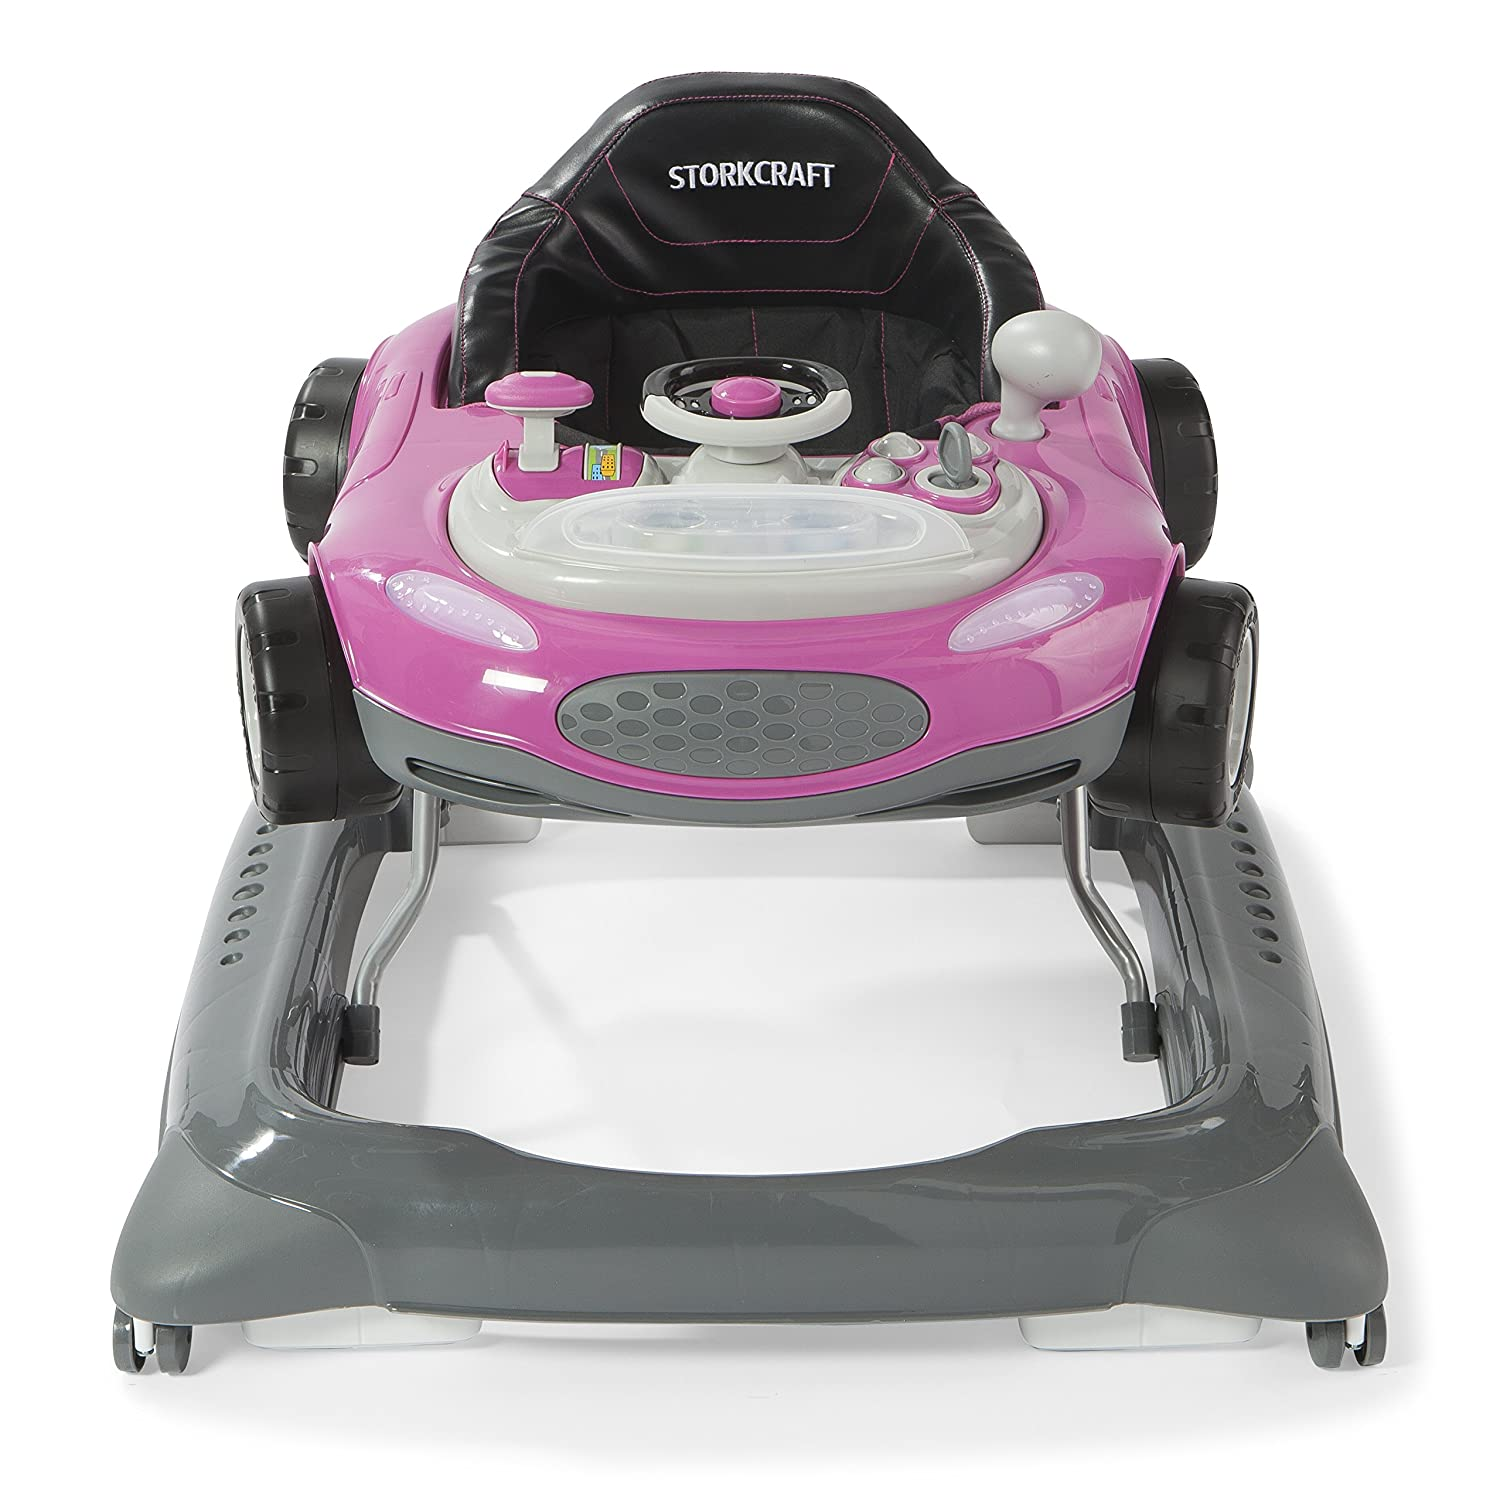 Adjustable Seat Pad Folds for Easy Storage Storkcraft Mini-Speedster Activity Walker Pink Interactive Walker with Realistic Driving Experience